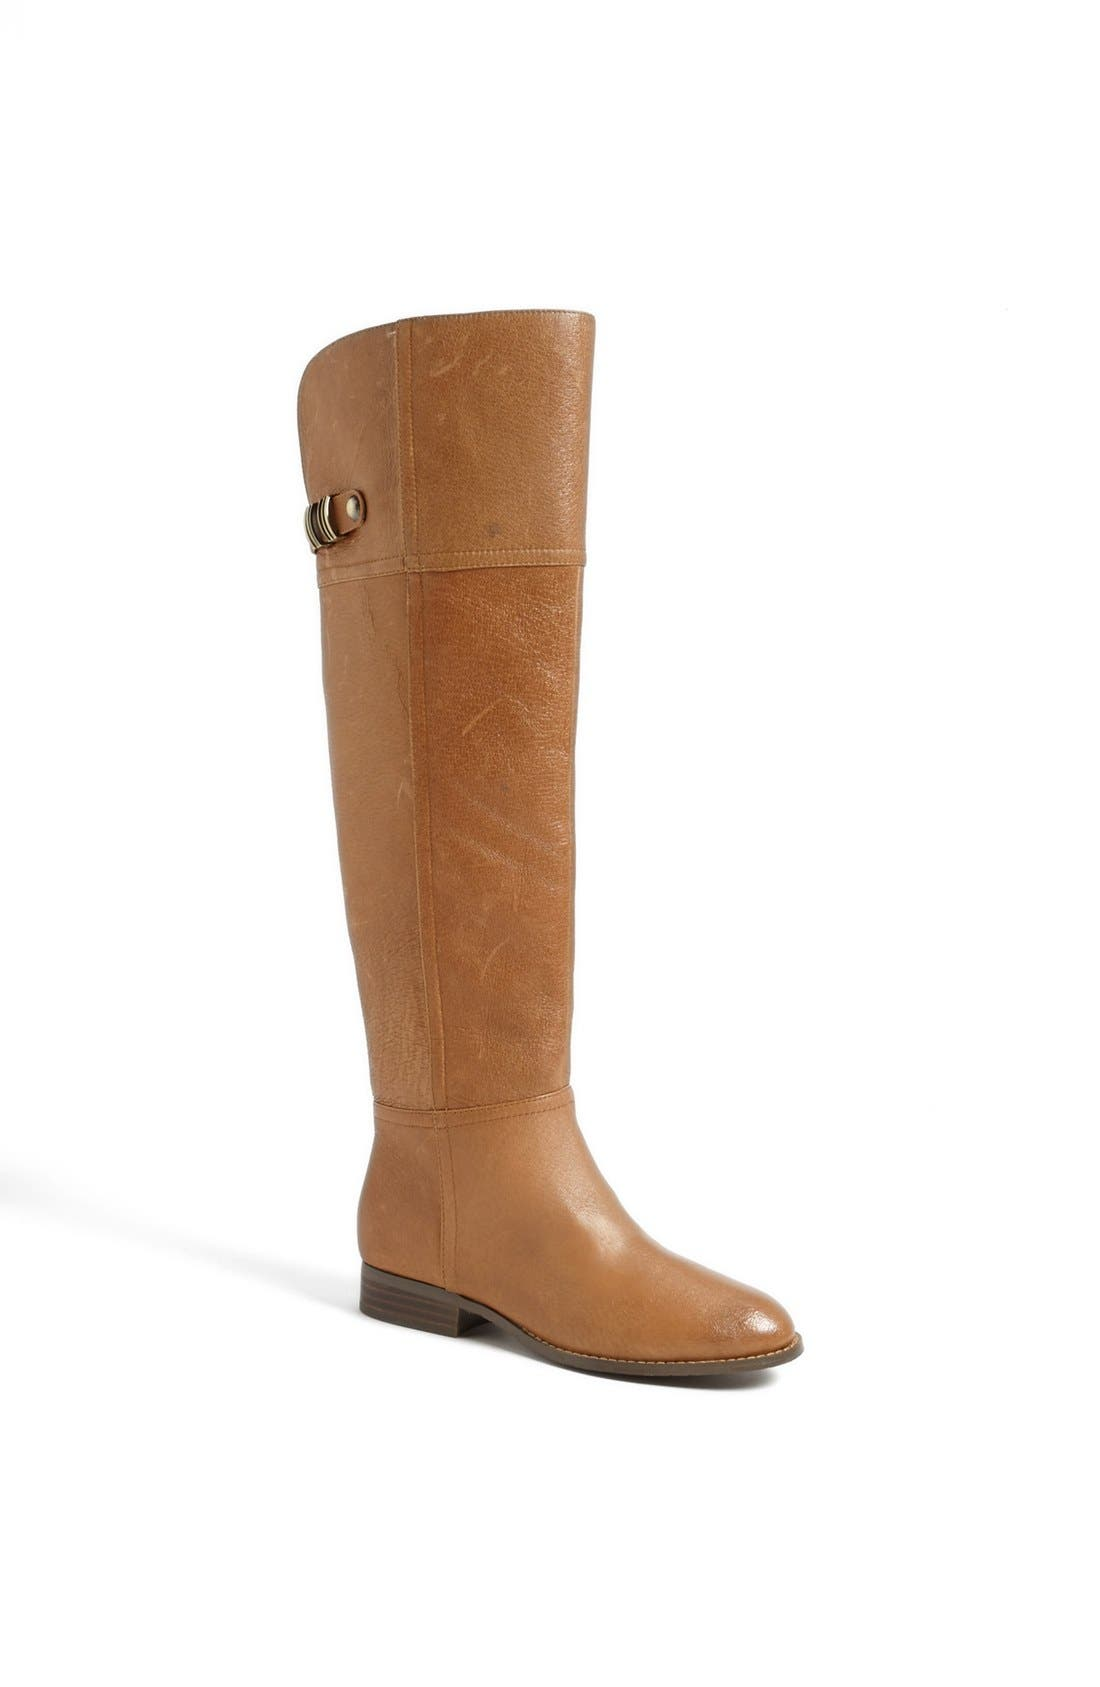 Alternate Image 1 Selected - Chinese Laundry 'Flash' Over the Knee Riding Boot